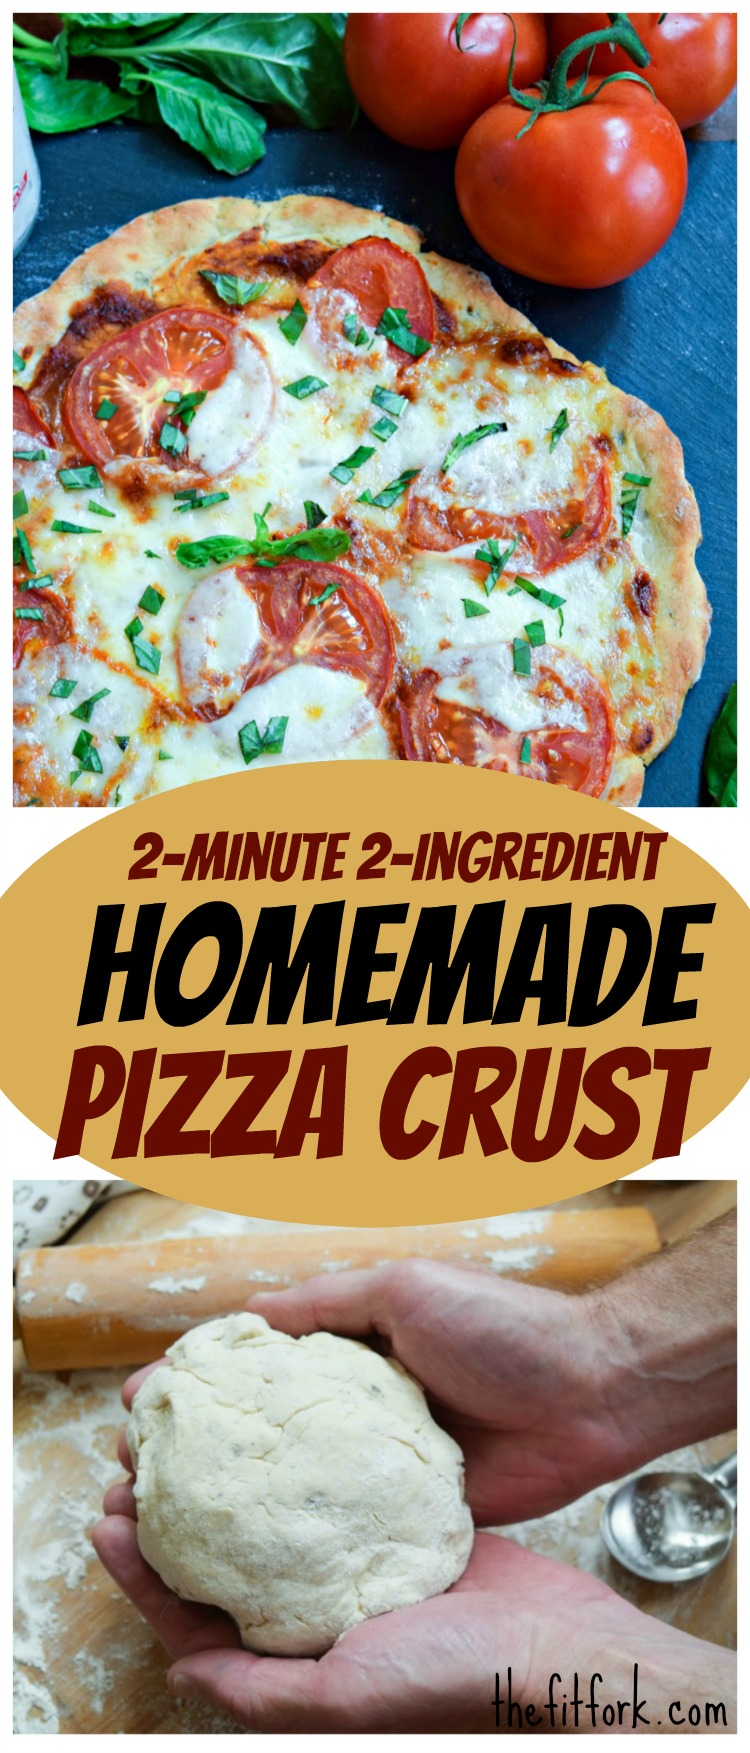 2 Minute 2 Ingredient Homemade Pizza Crust is an easy dinner solution that packs a little extra protein with Greek yogurt.